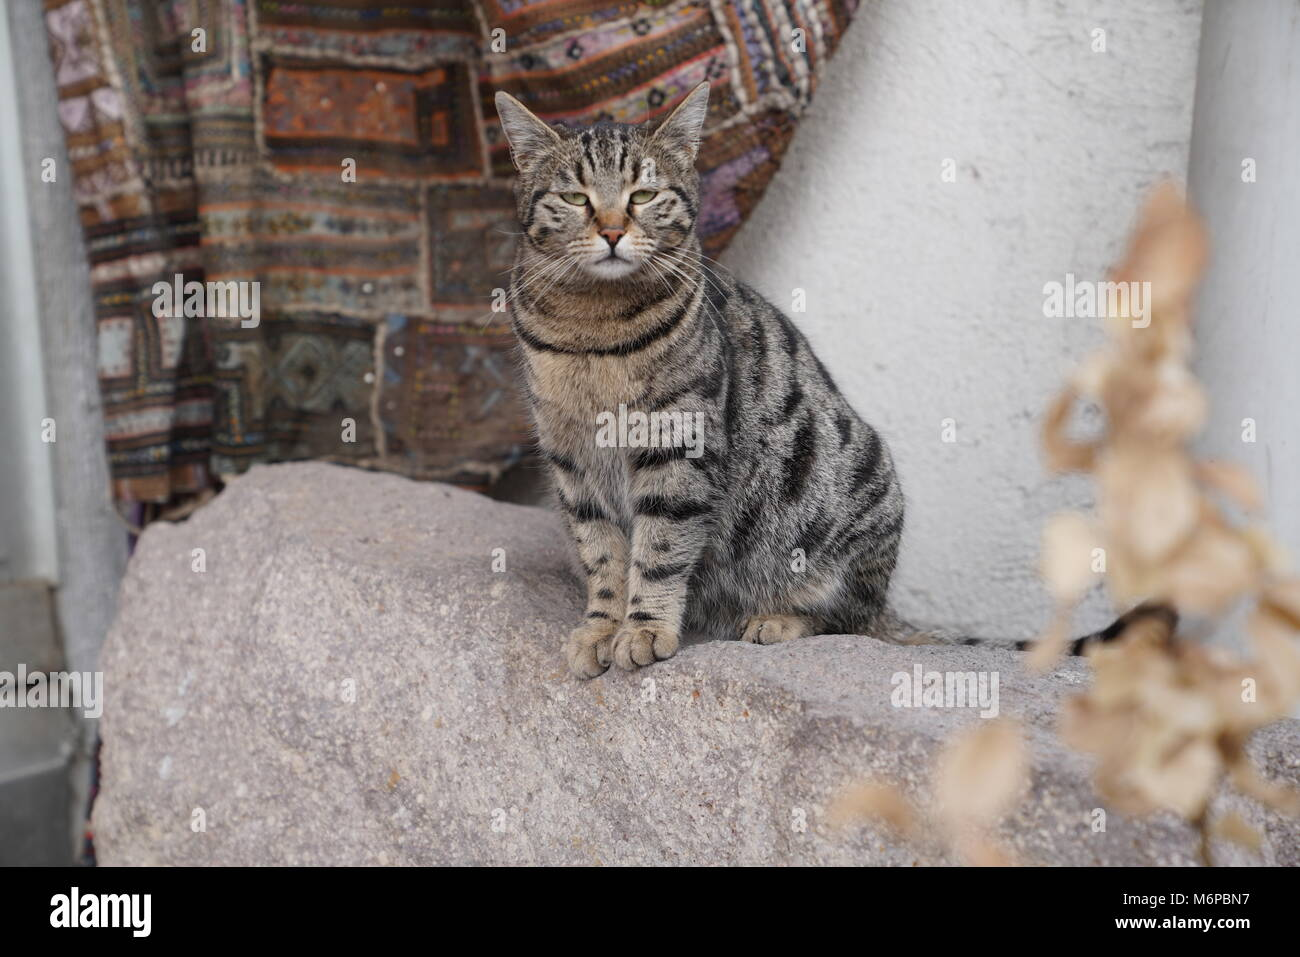 Lovely brown cat sitting on the rock and looking tiredly - Stock Image